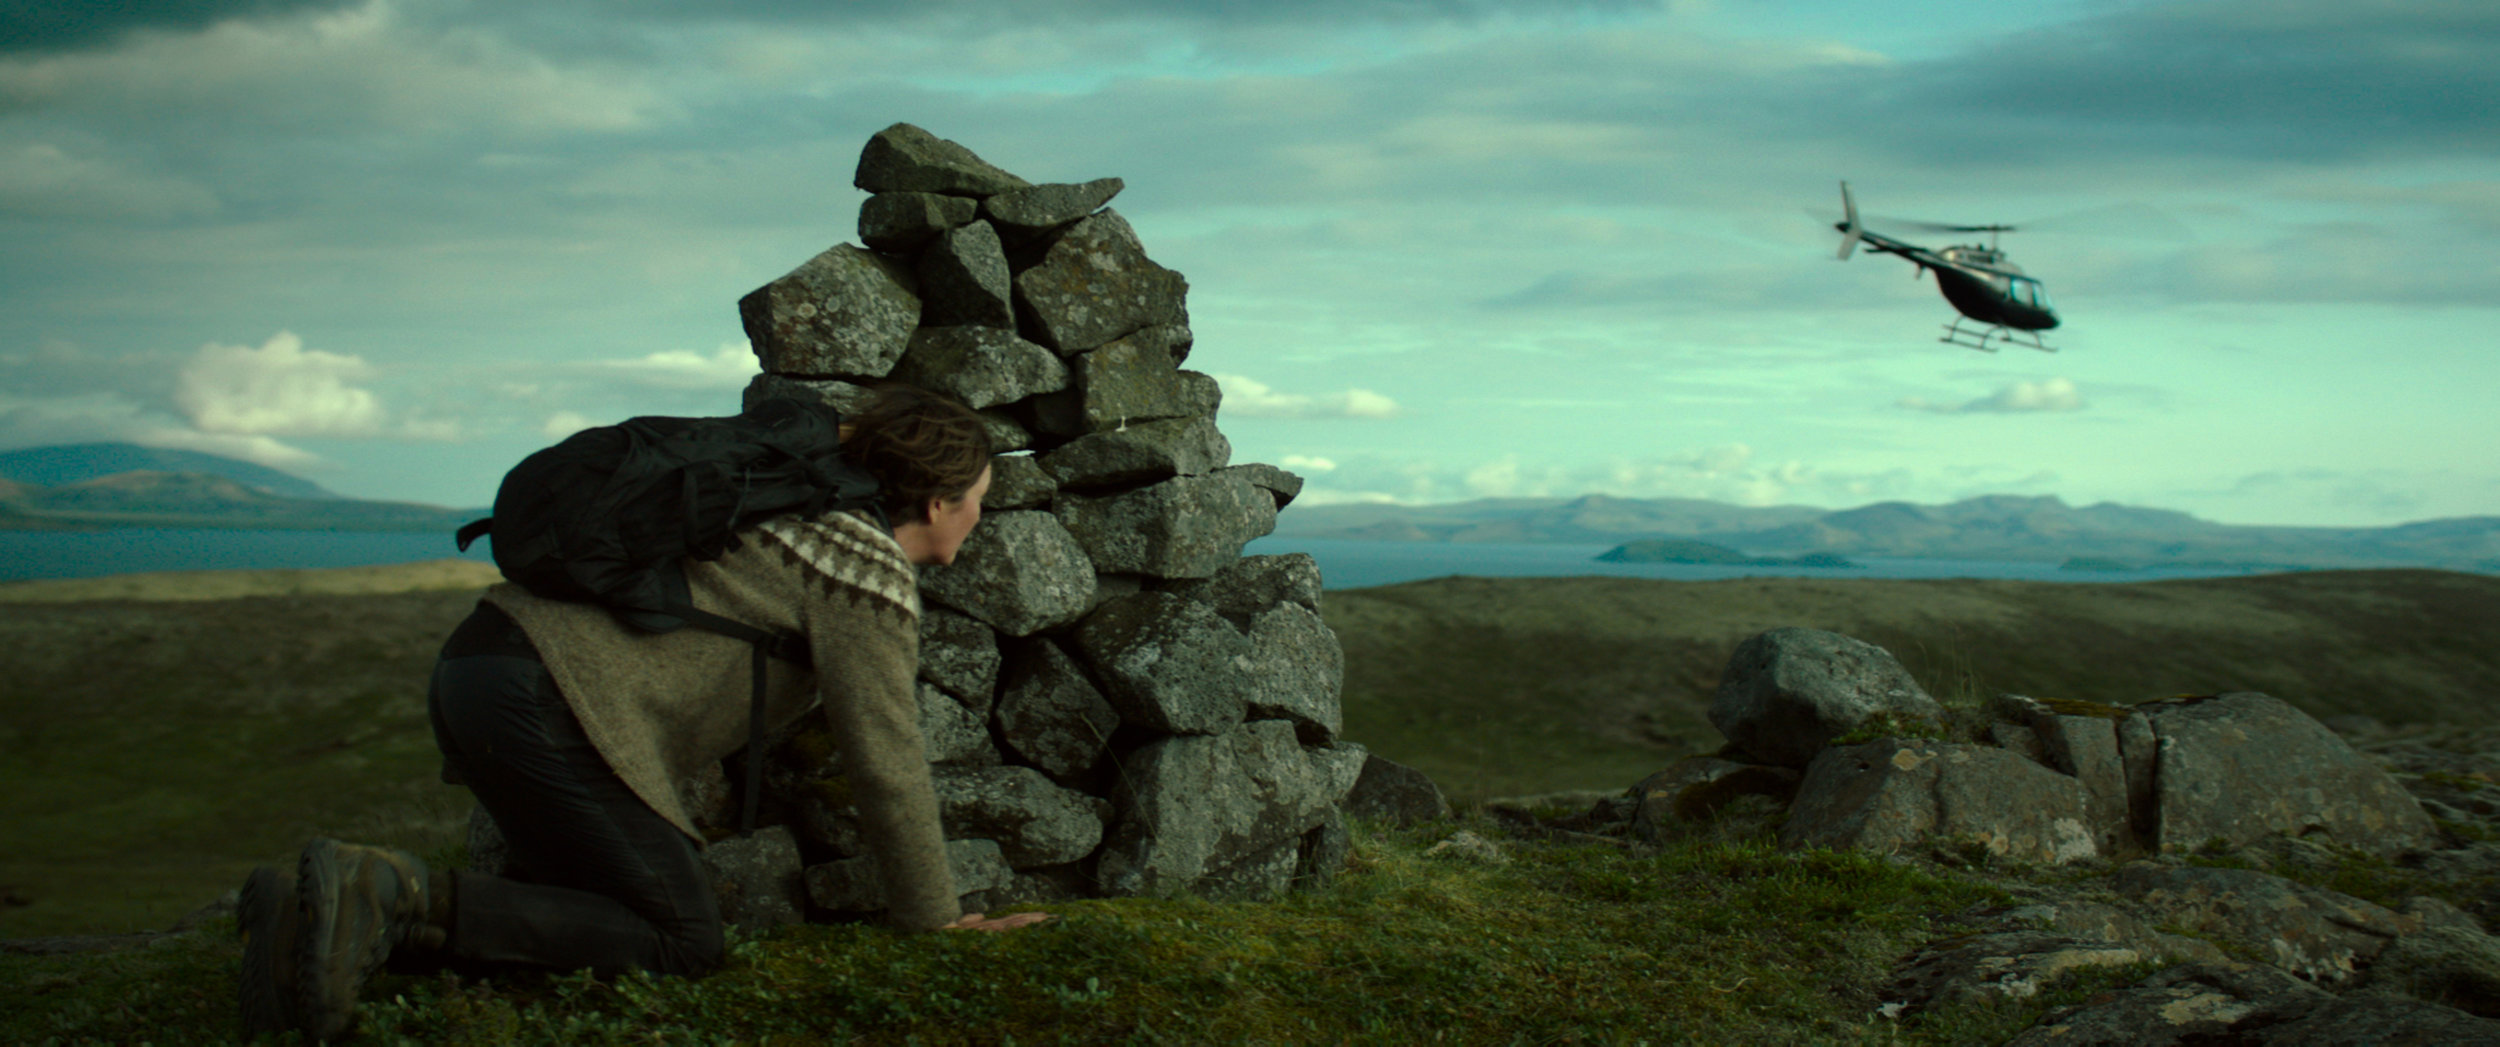 "Halla (Halldóra Geirharðsdóttir) hides from police helicopters after committing some ecological espionage in the Icelandic drama ""Woman at War."" (Photo courtesy Magnolia Pictures.)"